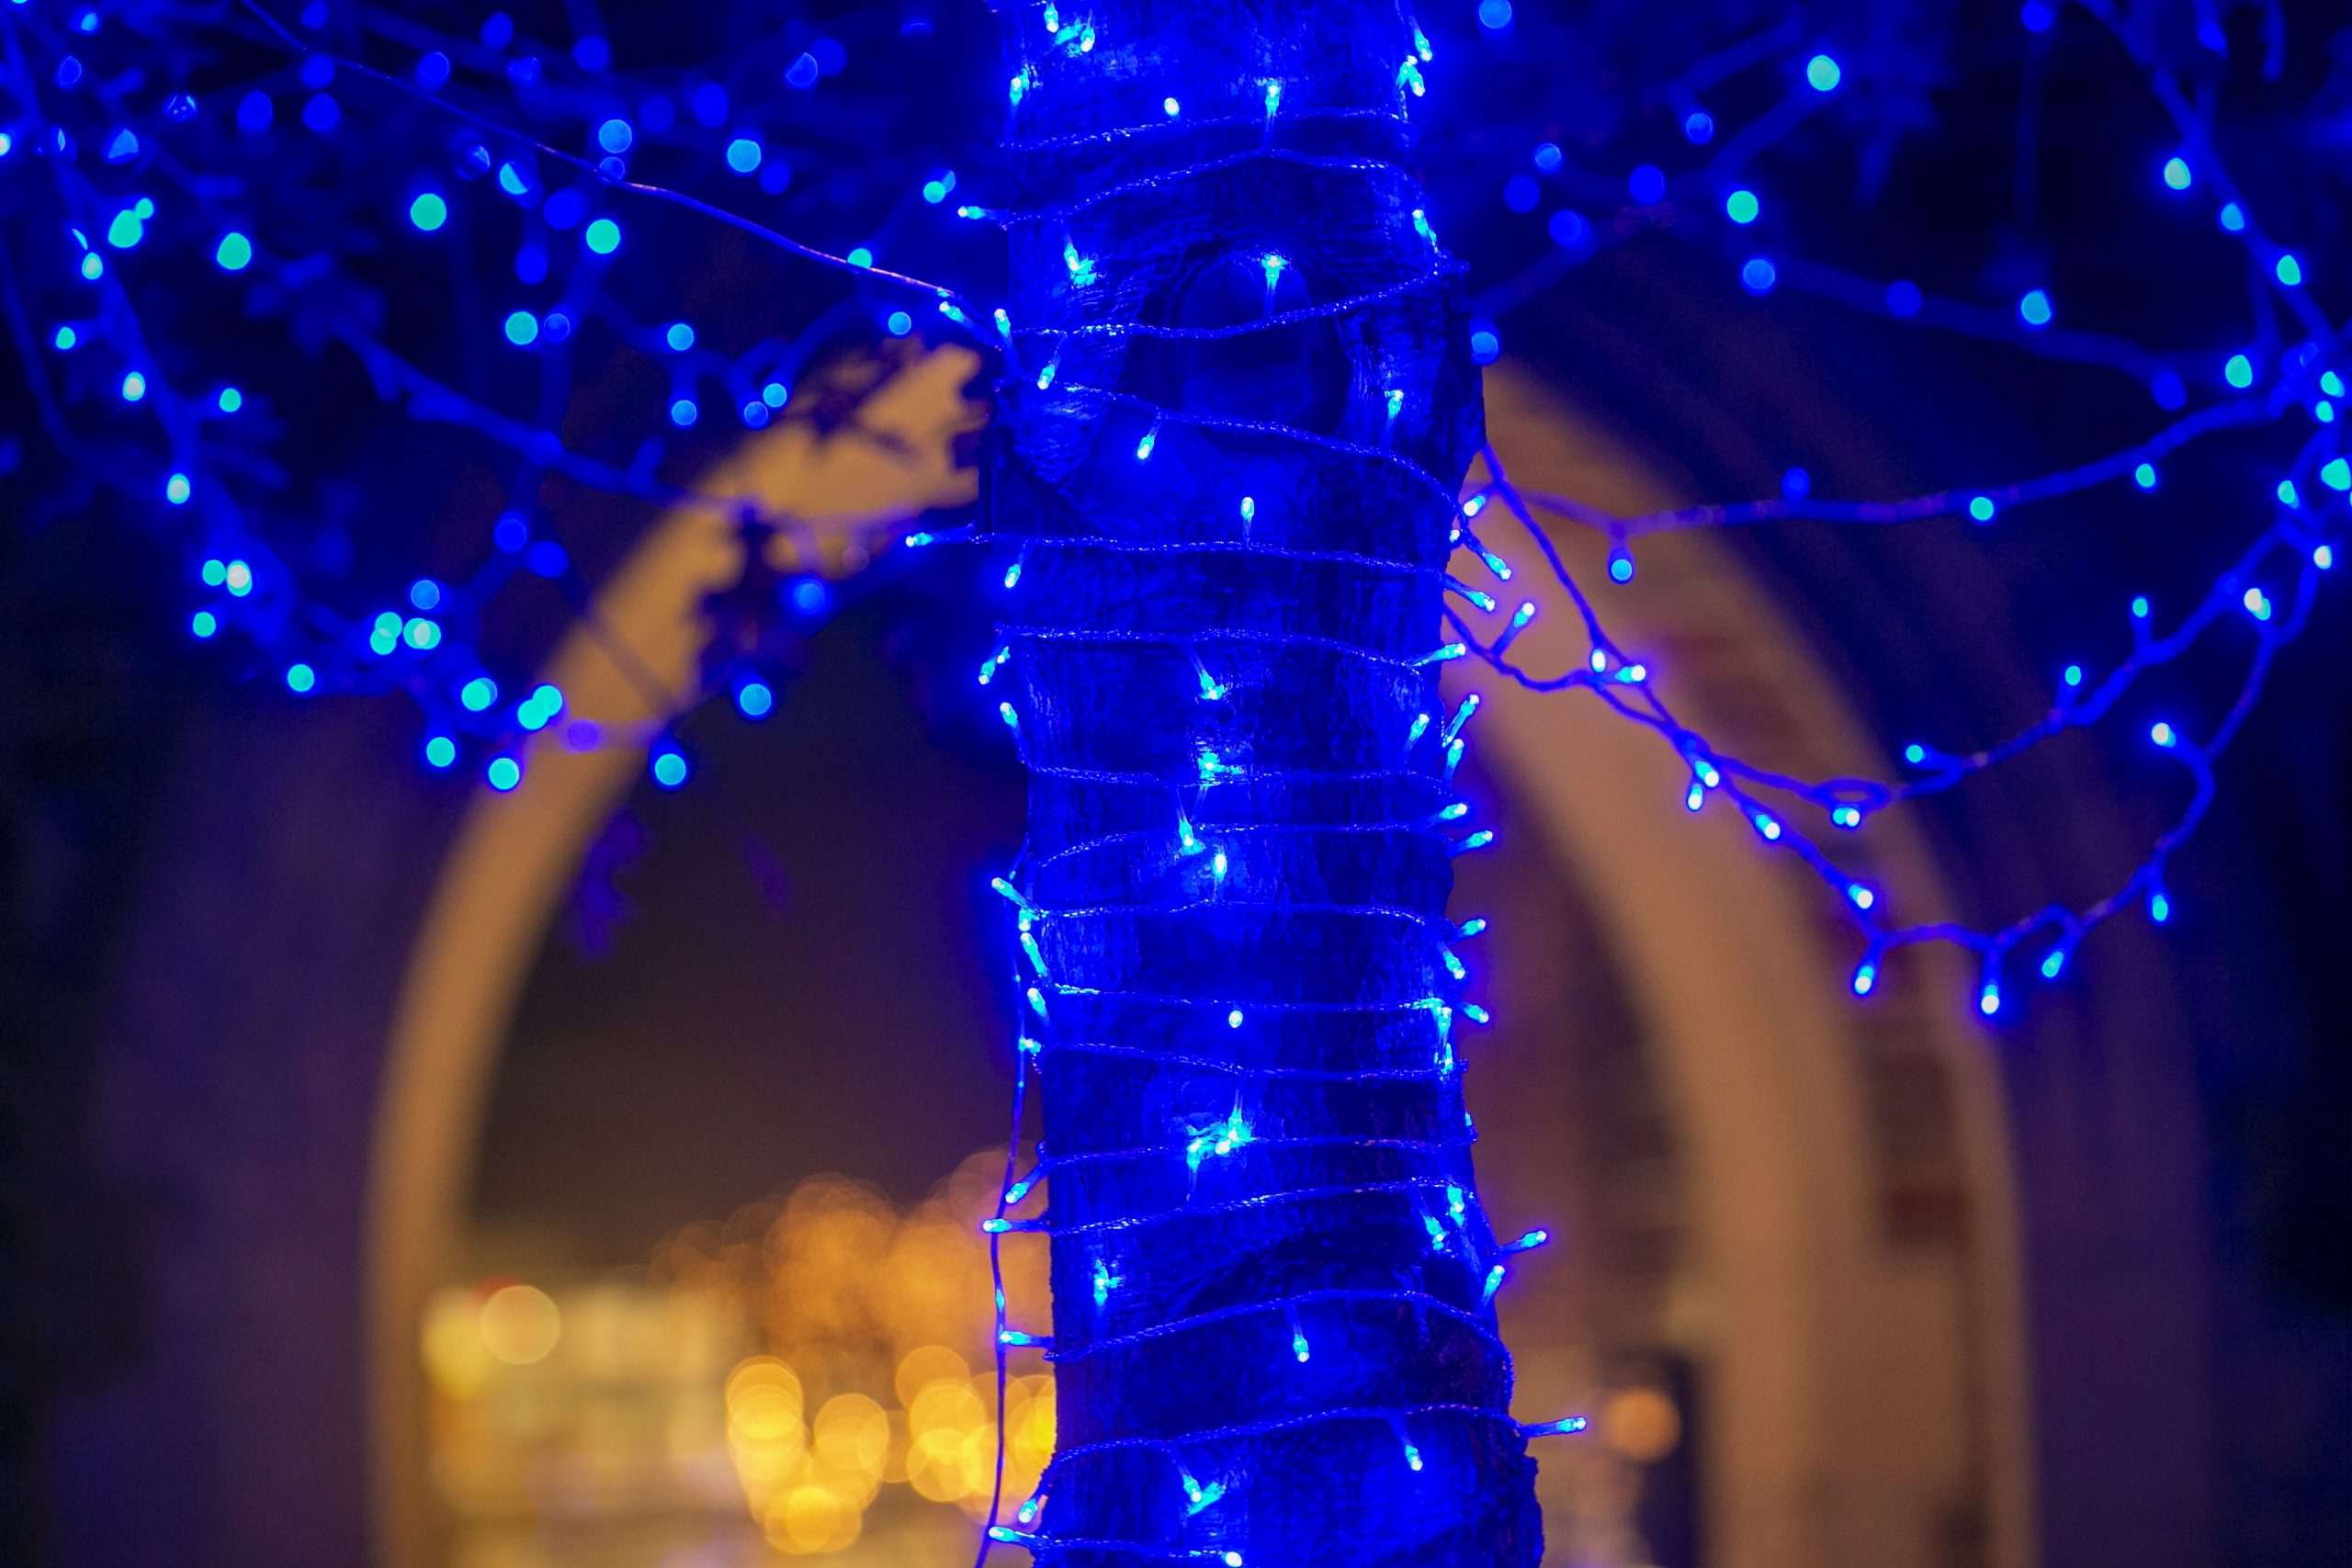 The University Communications team decorated a tree outside of the Brodhead Center with blue string lights for a holiday video.